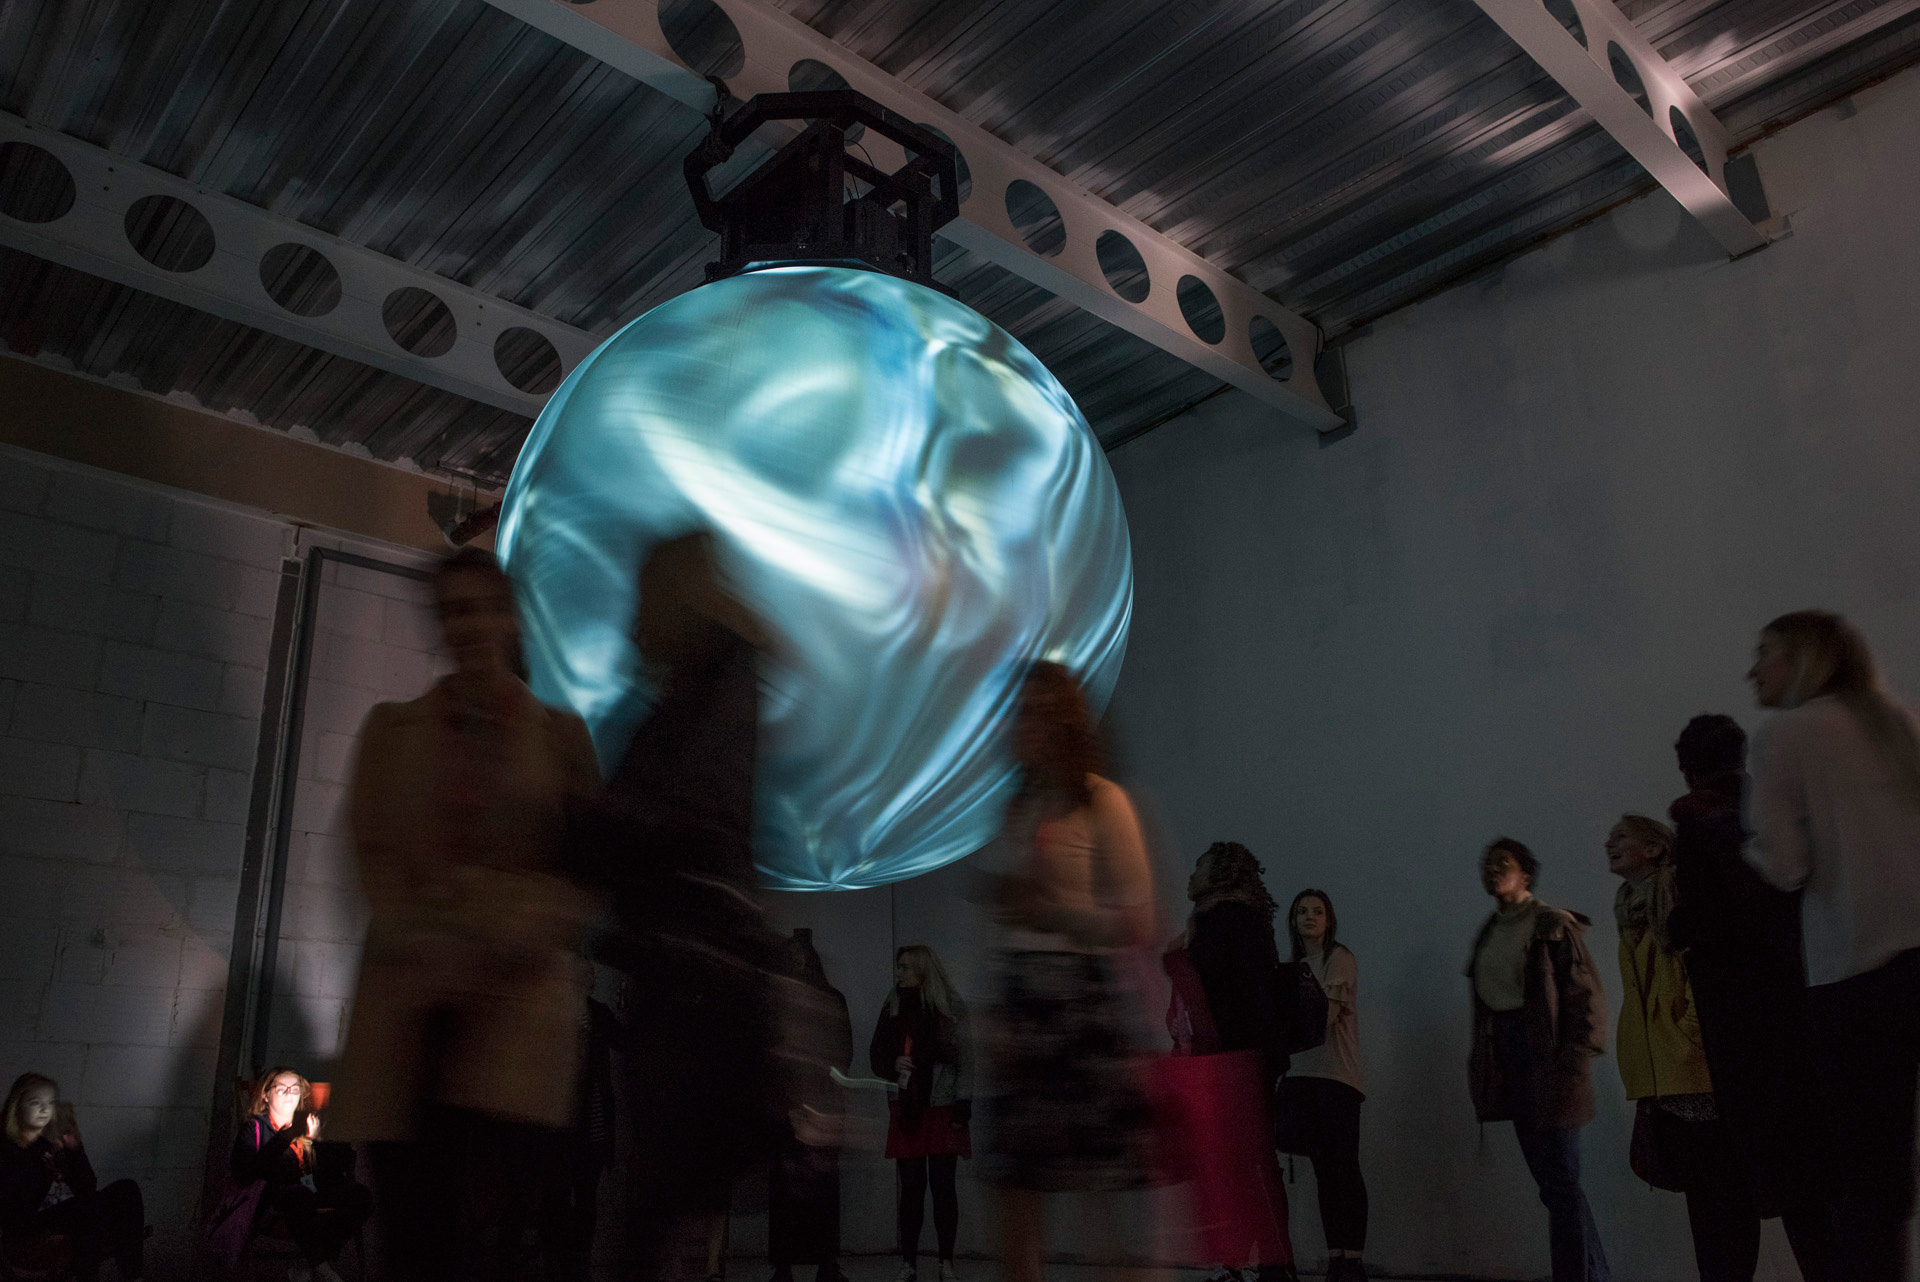 Lumen Prize Exhibition 2017: Another collection of interactive, immersive installations that blurred the lines of art, technology, sound and audience participation.Find out more...